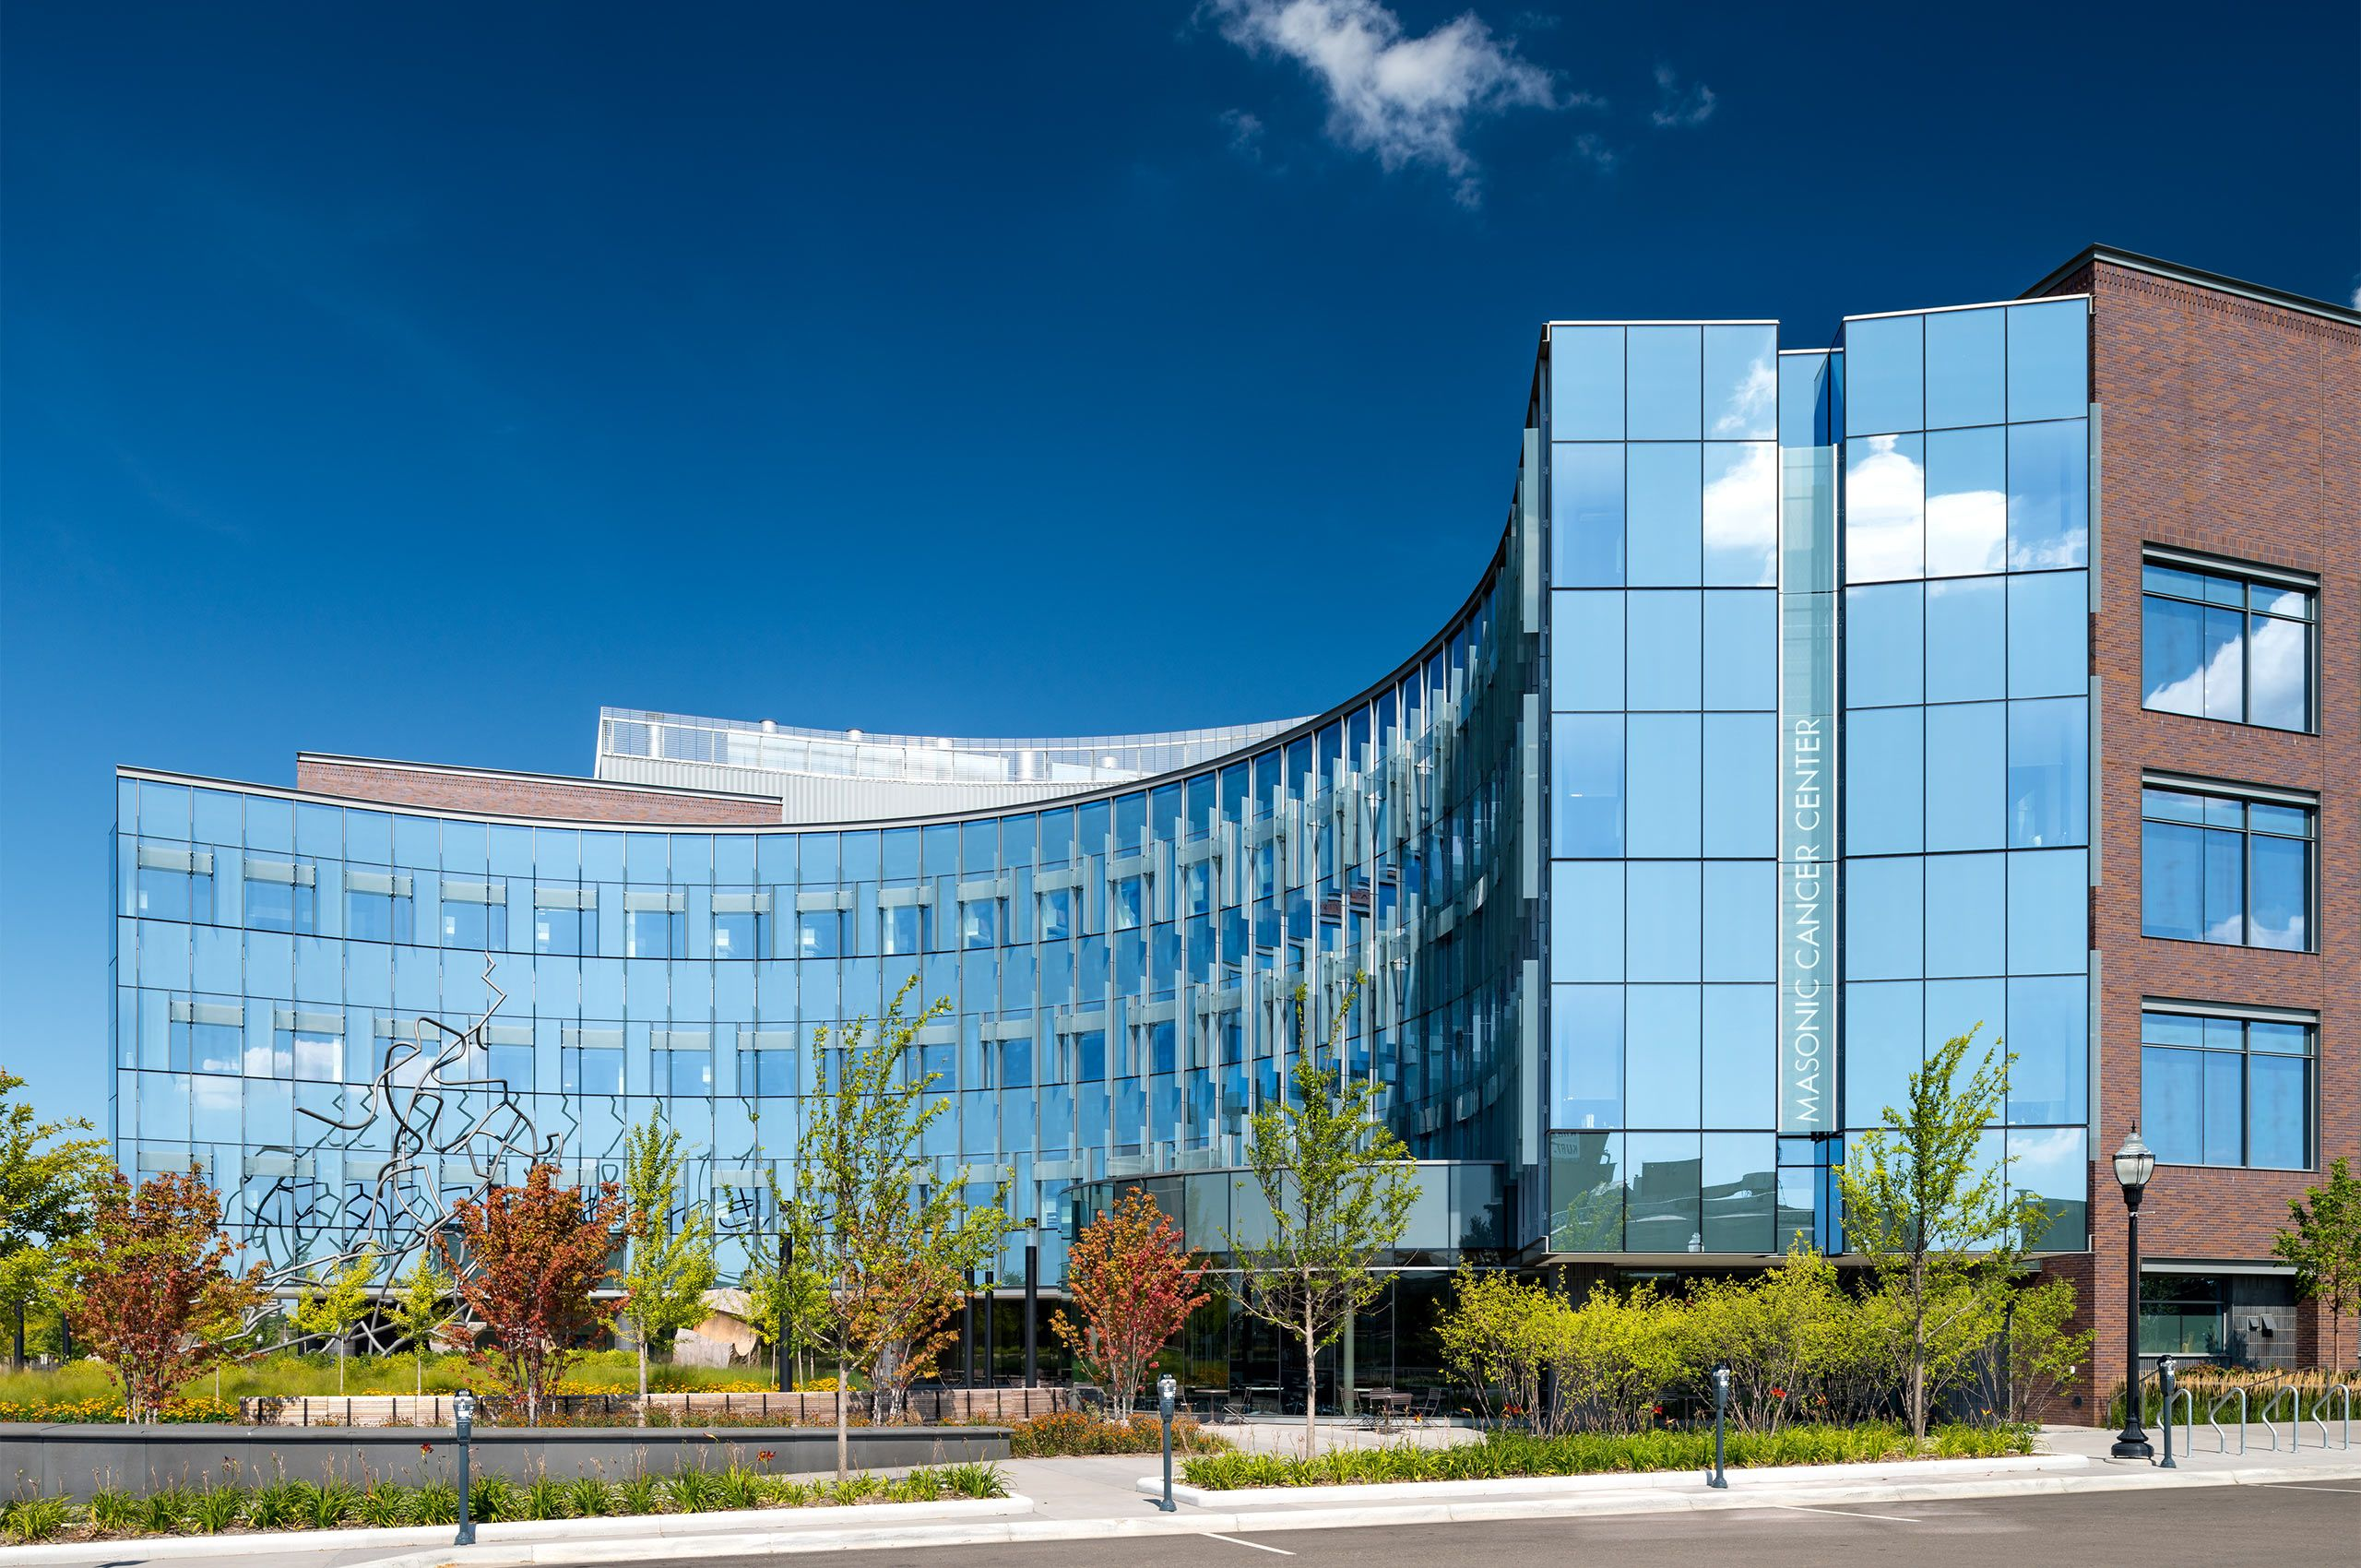 CANCER AND CARDIOVASCULAR RESEARCH BUILDING.  BIOMEDICAL DISCOVERY DISTRICT, UNIVERSITY OF MINNESOTA